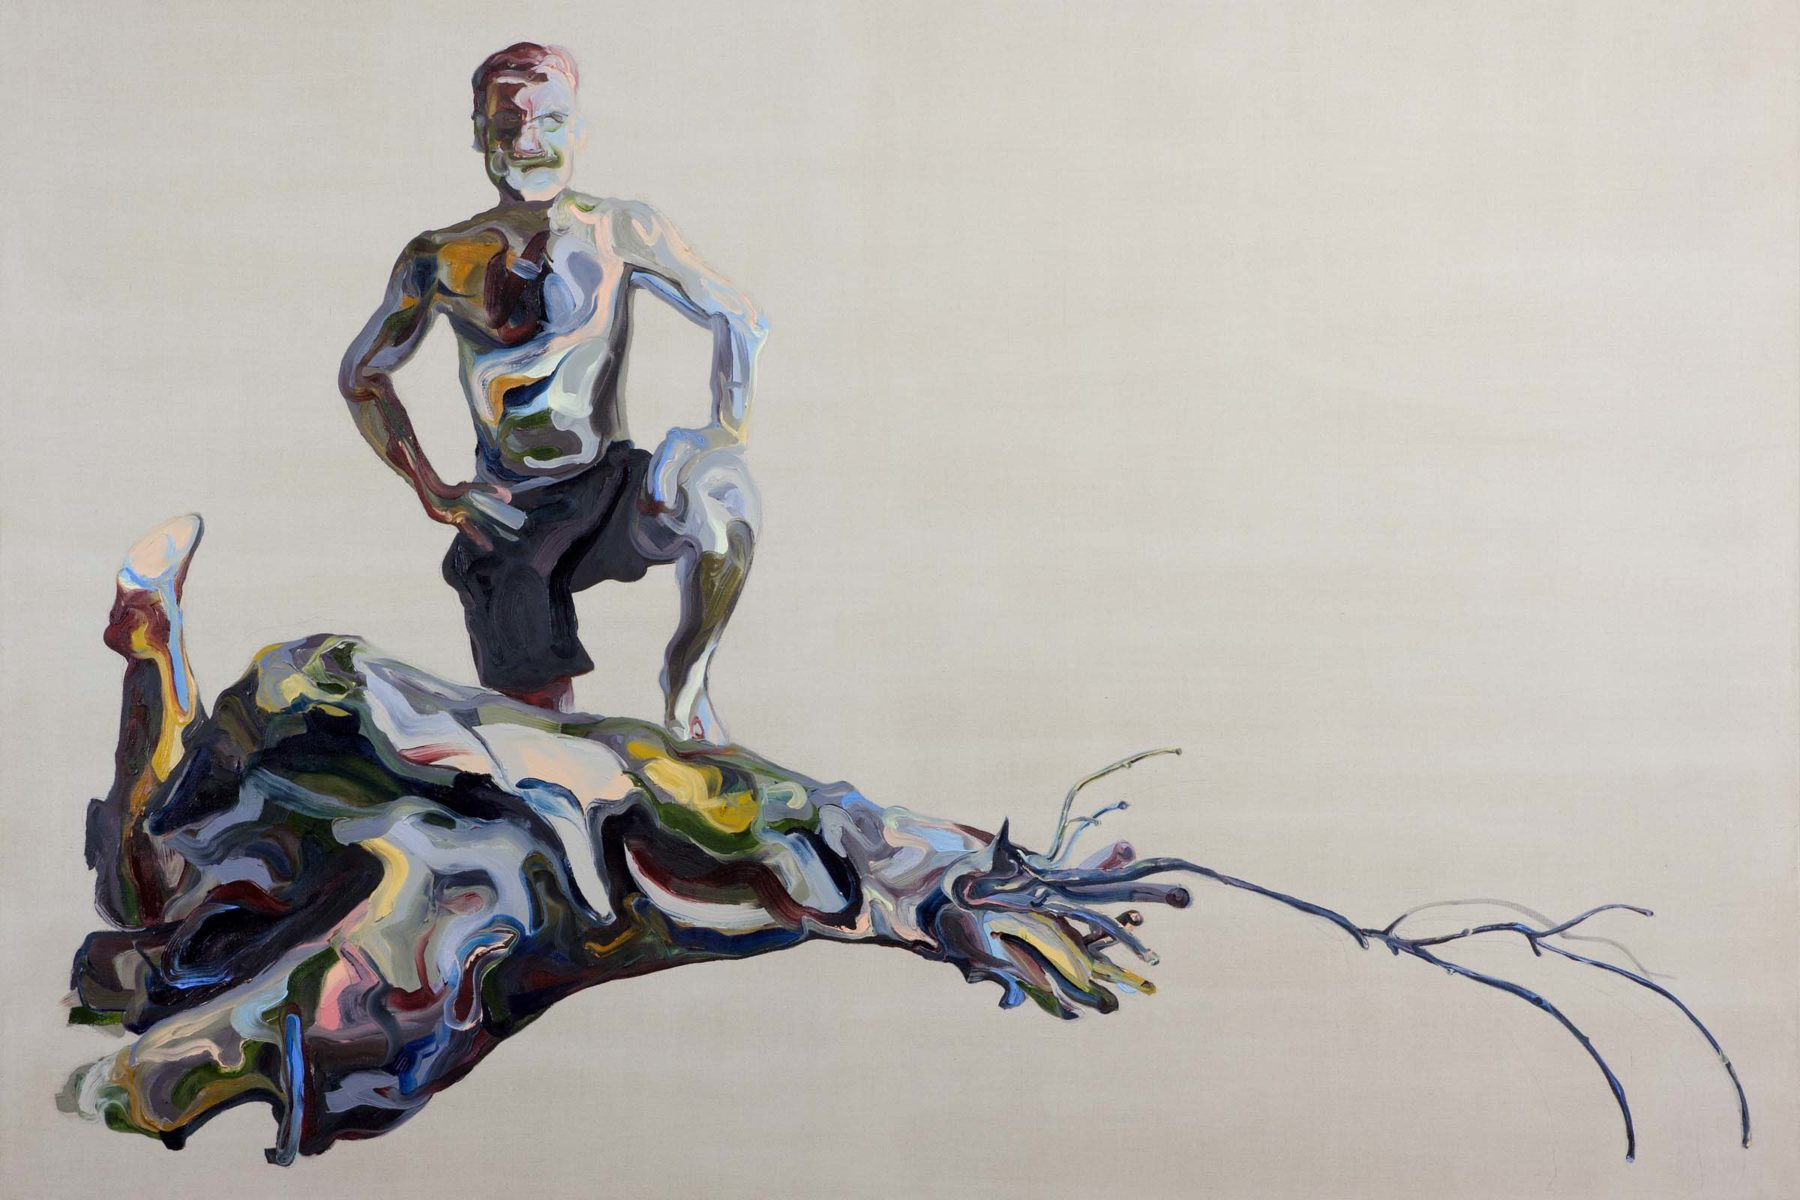 Matteo Fato, Untitled With Wood, 2012, oil on linen, 219 x 163 cm